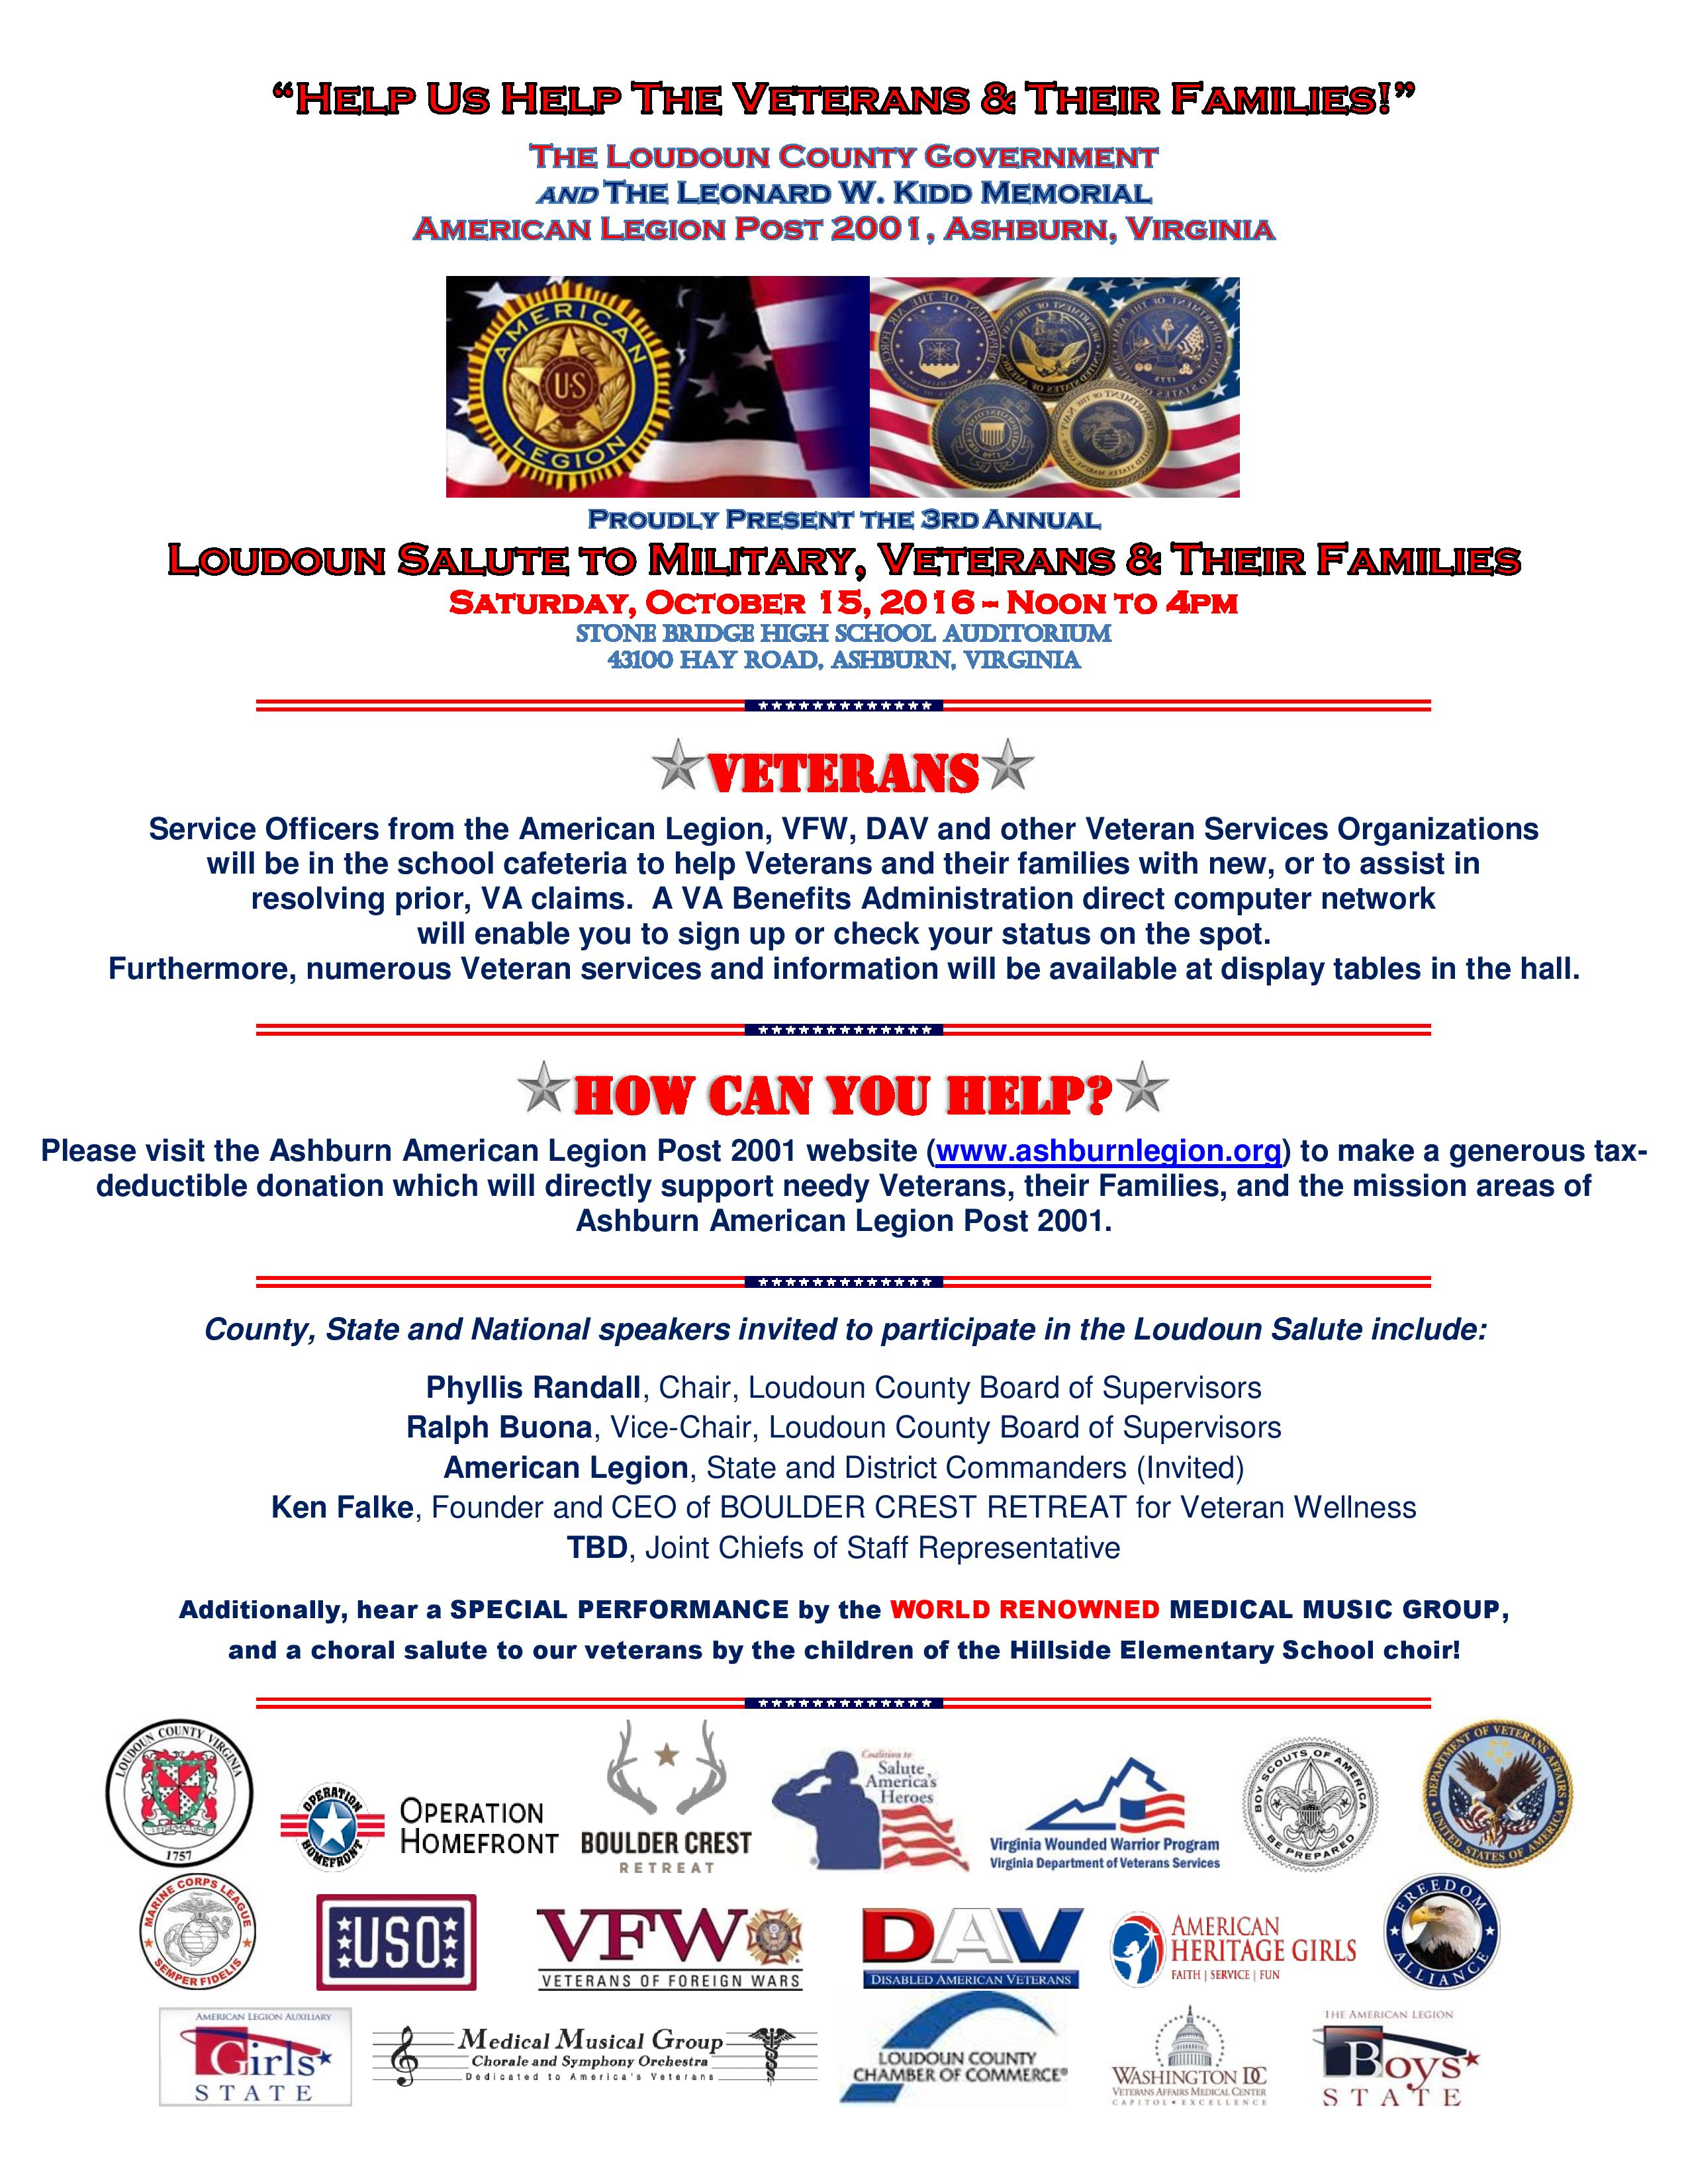 2016-salute-event-flyer-v7-15-sep-16-page-001